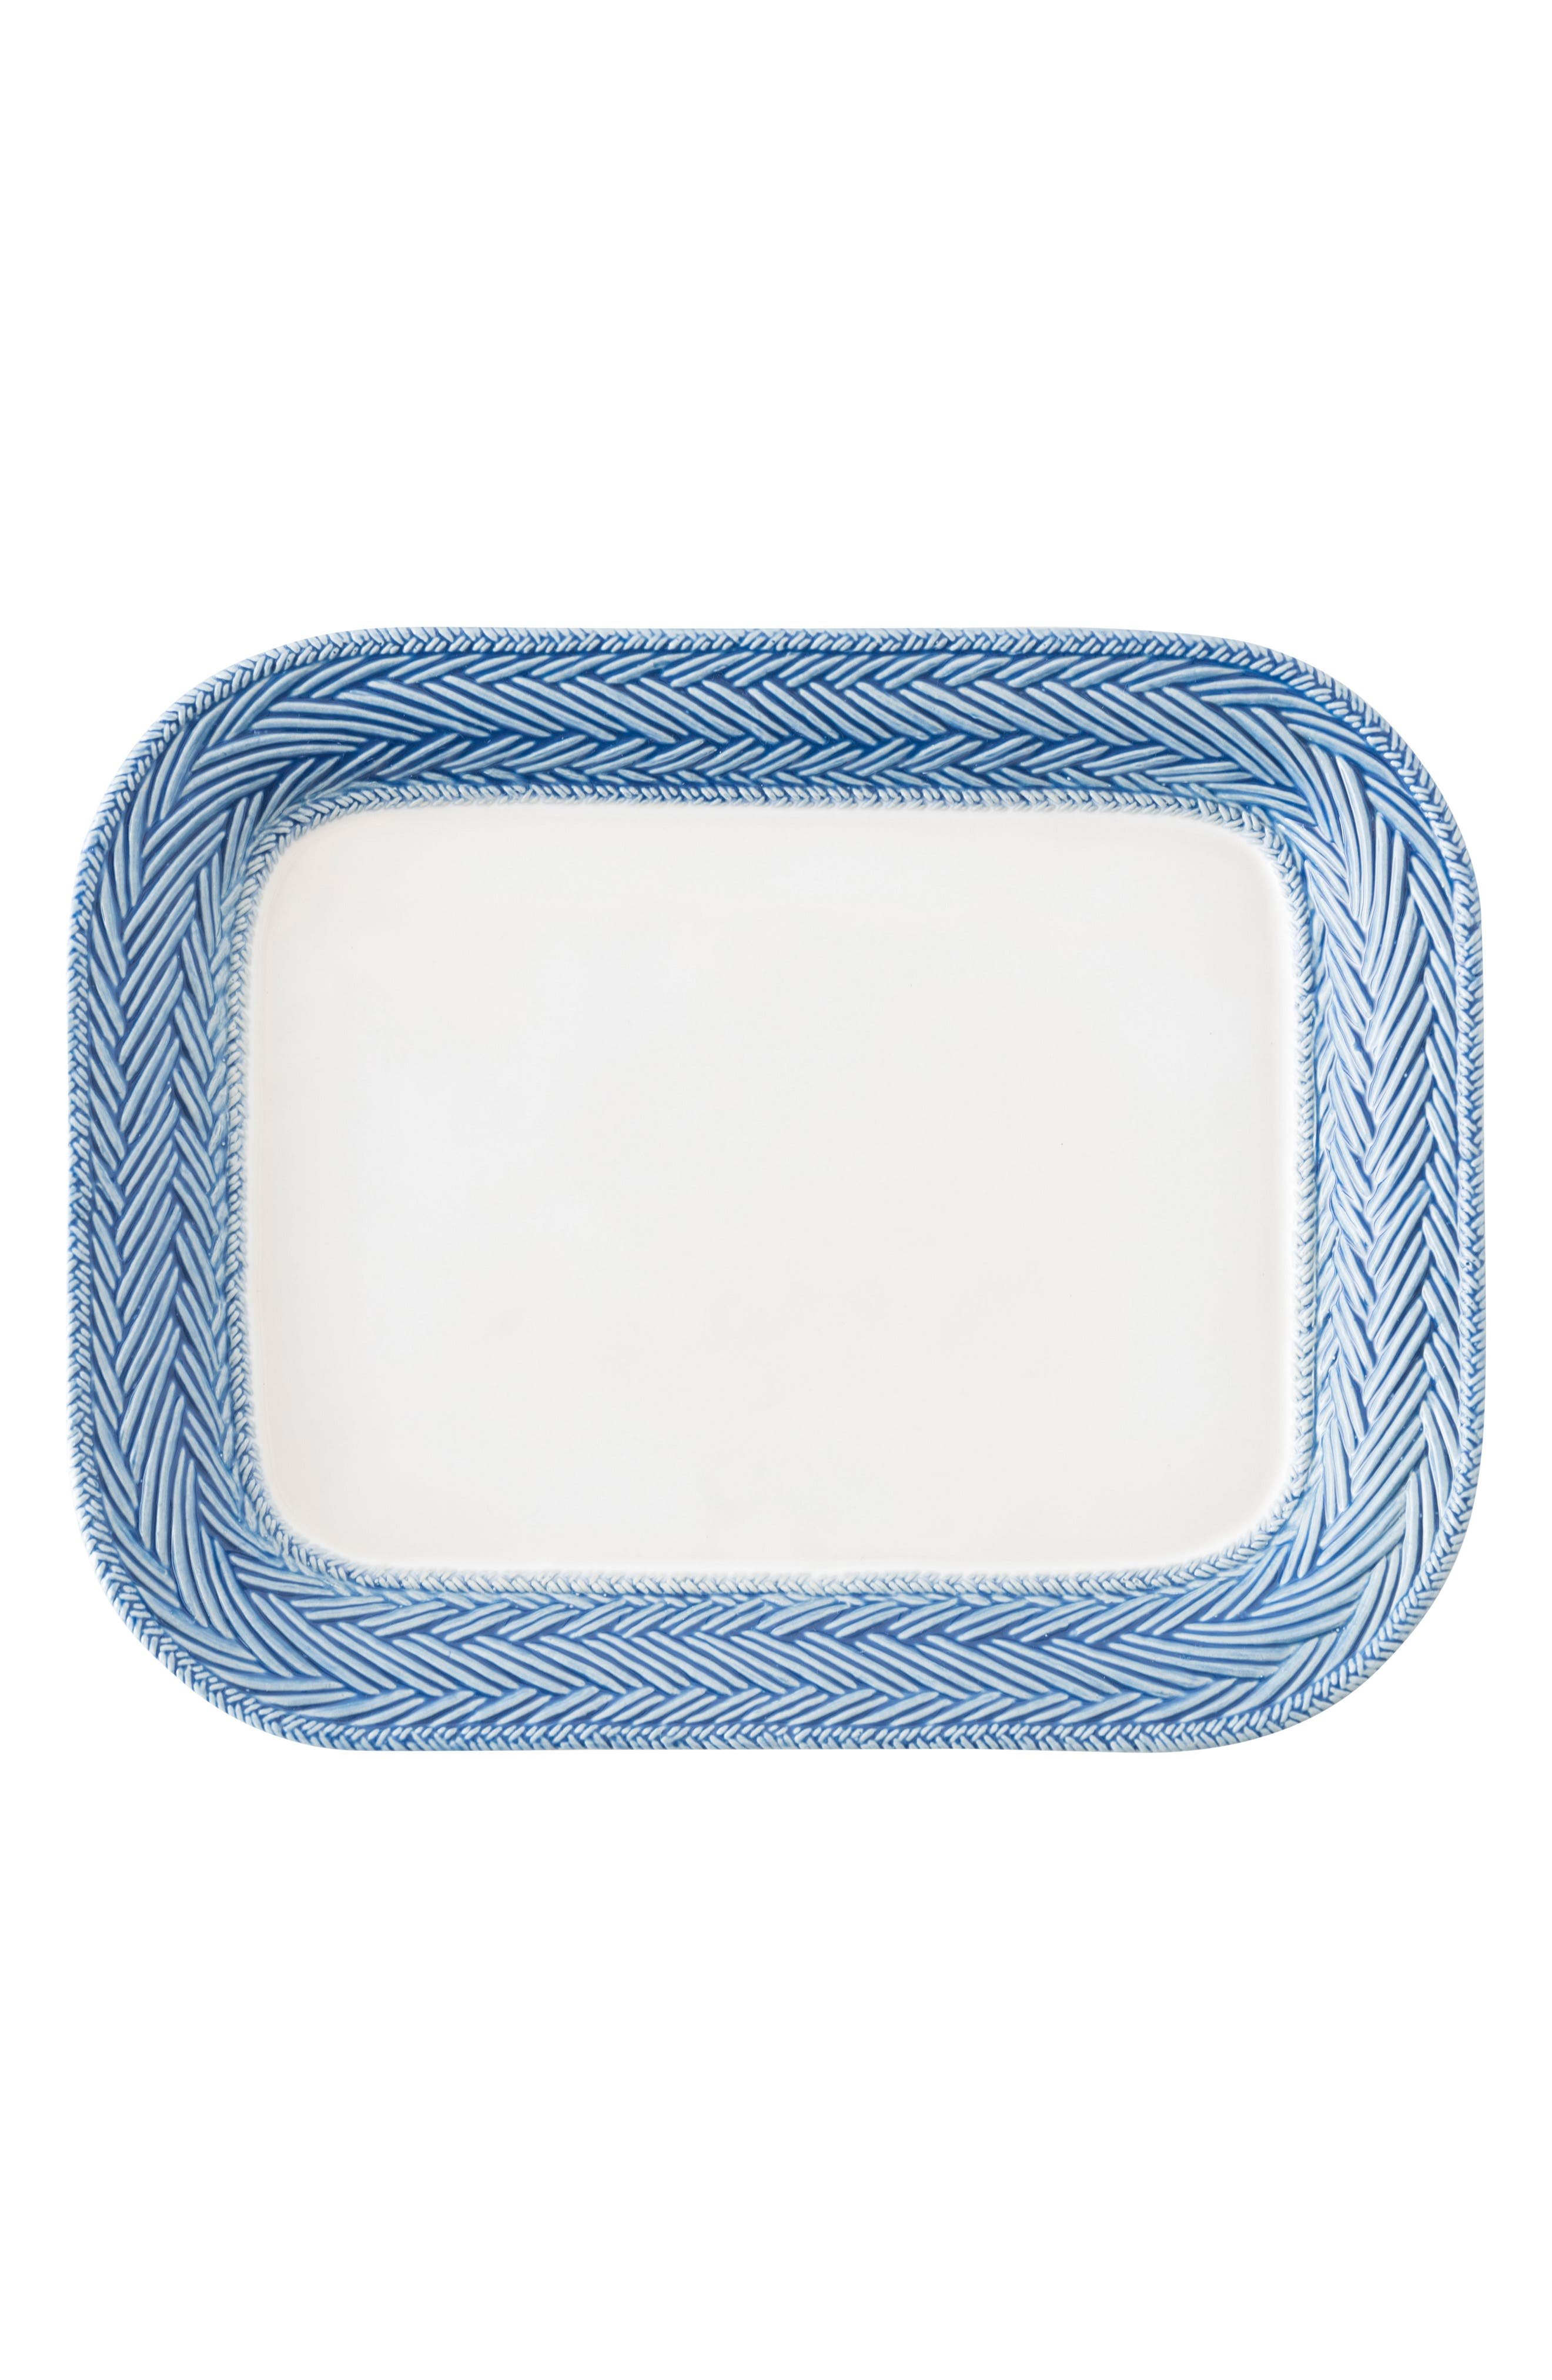 Le Panier Serving Platter,                         Main,                         color, WHITEWASH/ DELFT BLUE